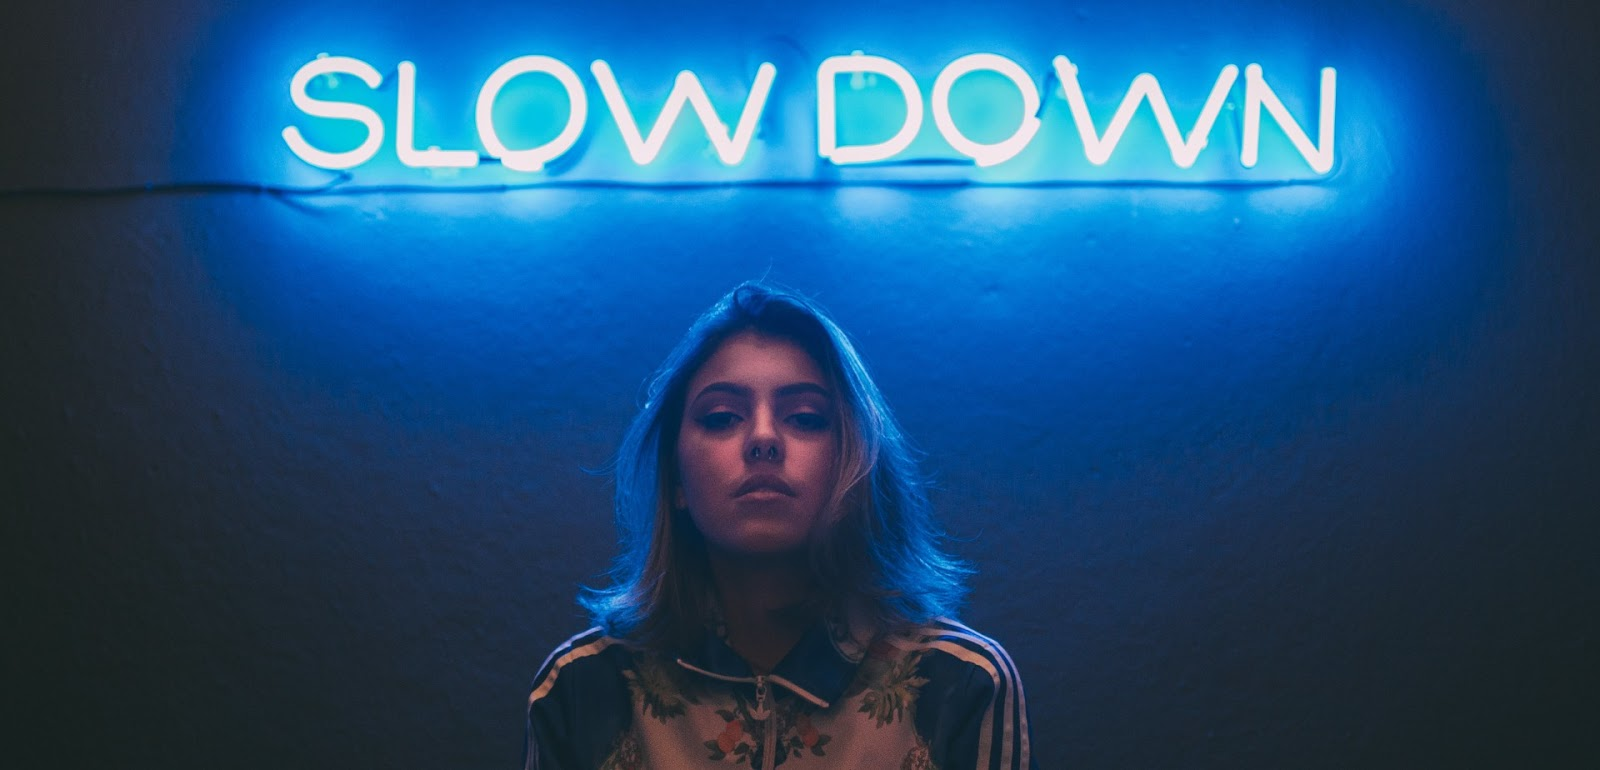 Girl with a glowing blue sign saying Slow Down